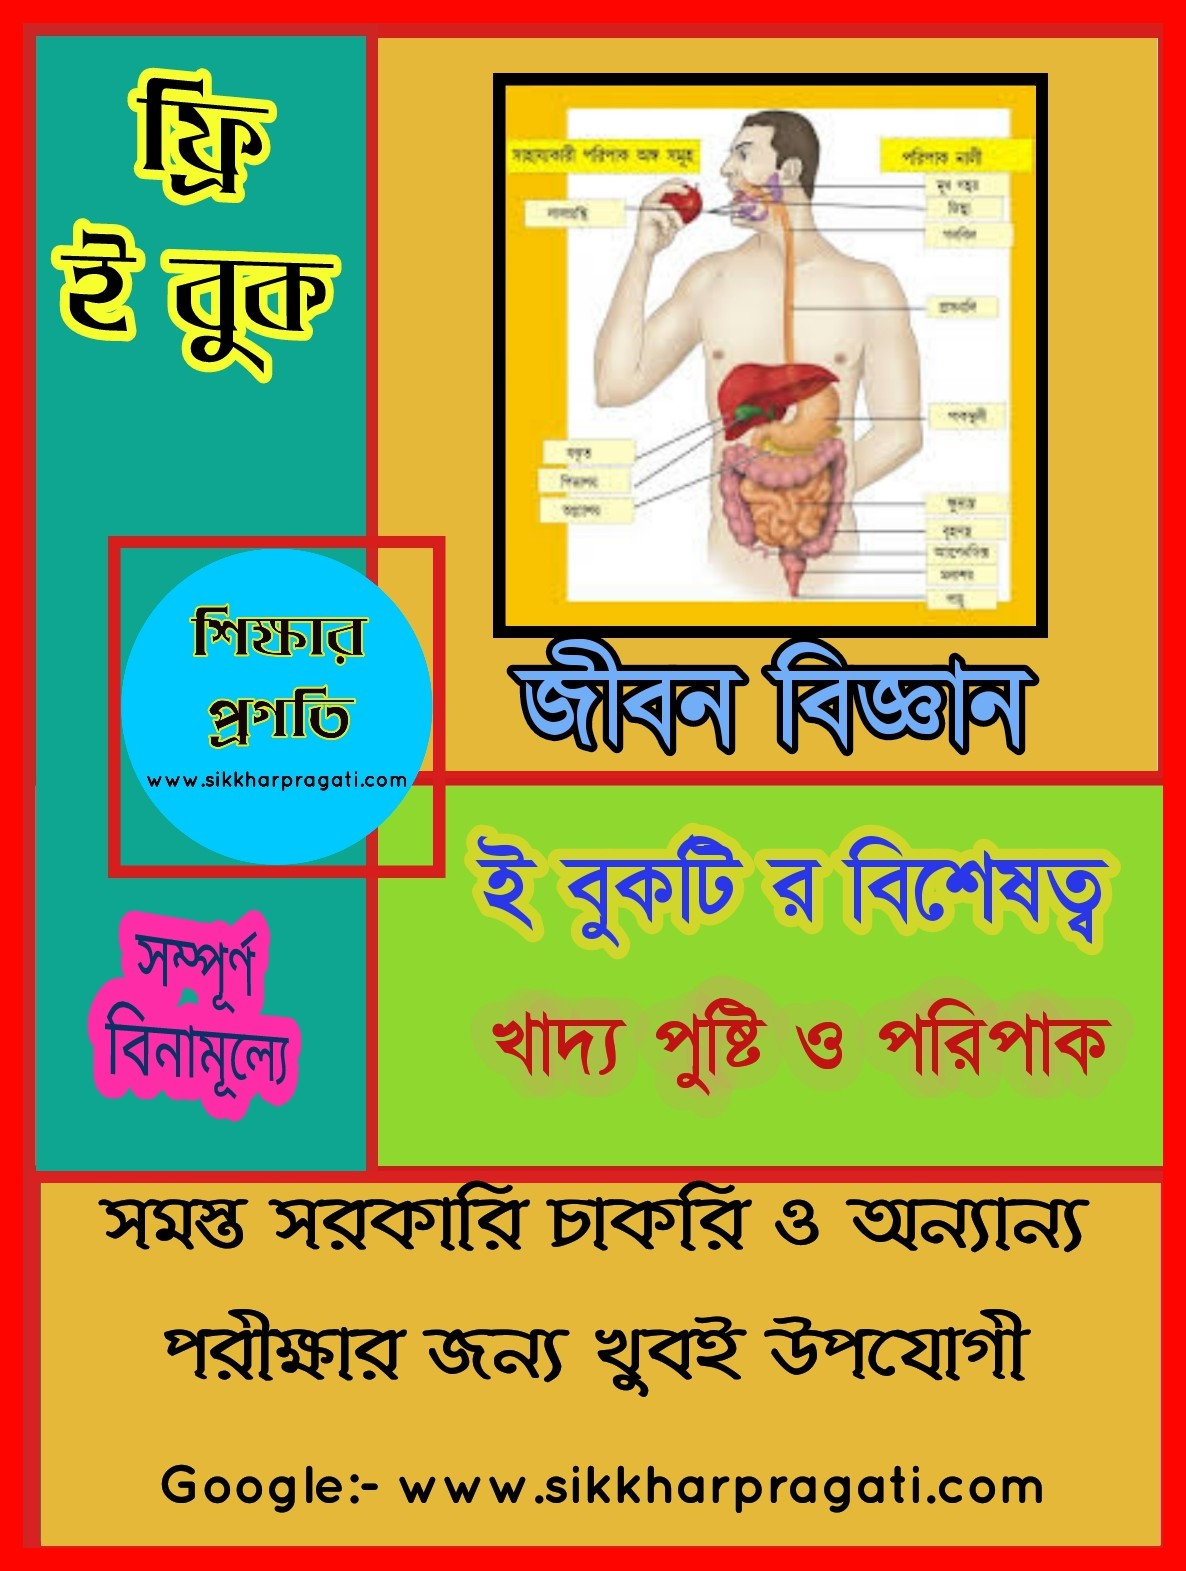 Life science book pdf in Bengali